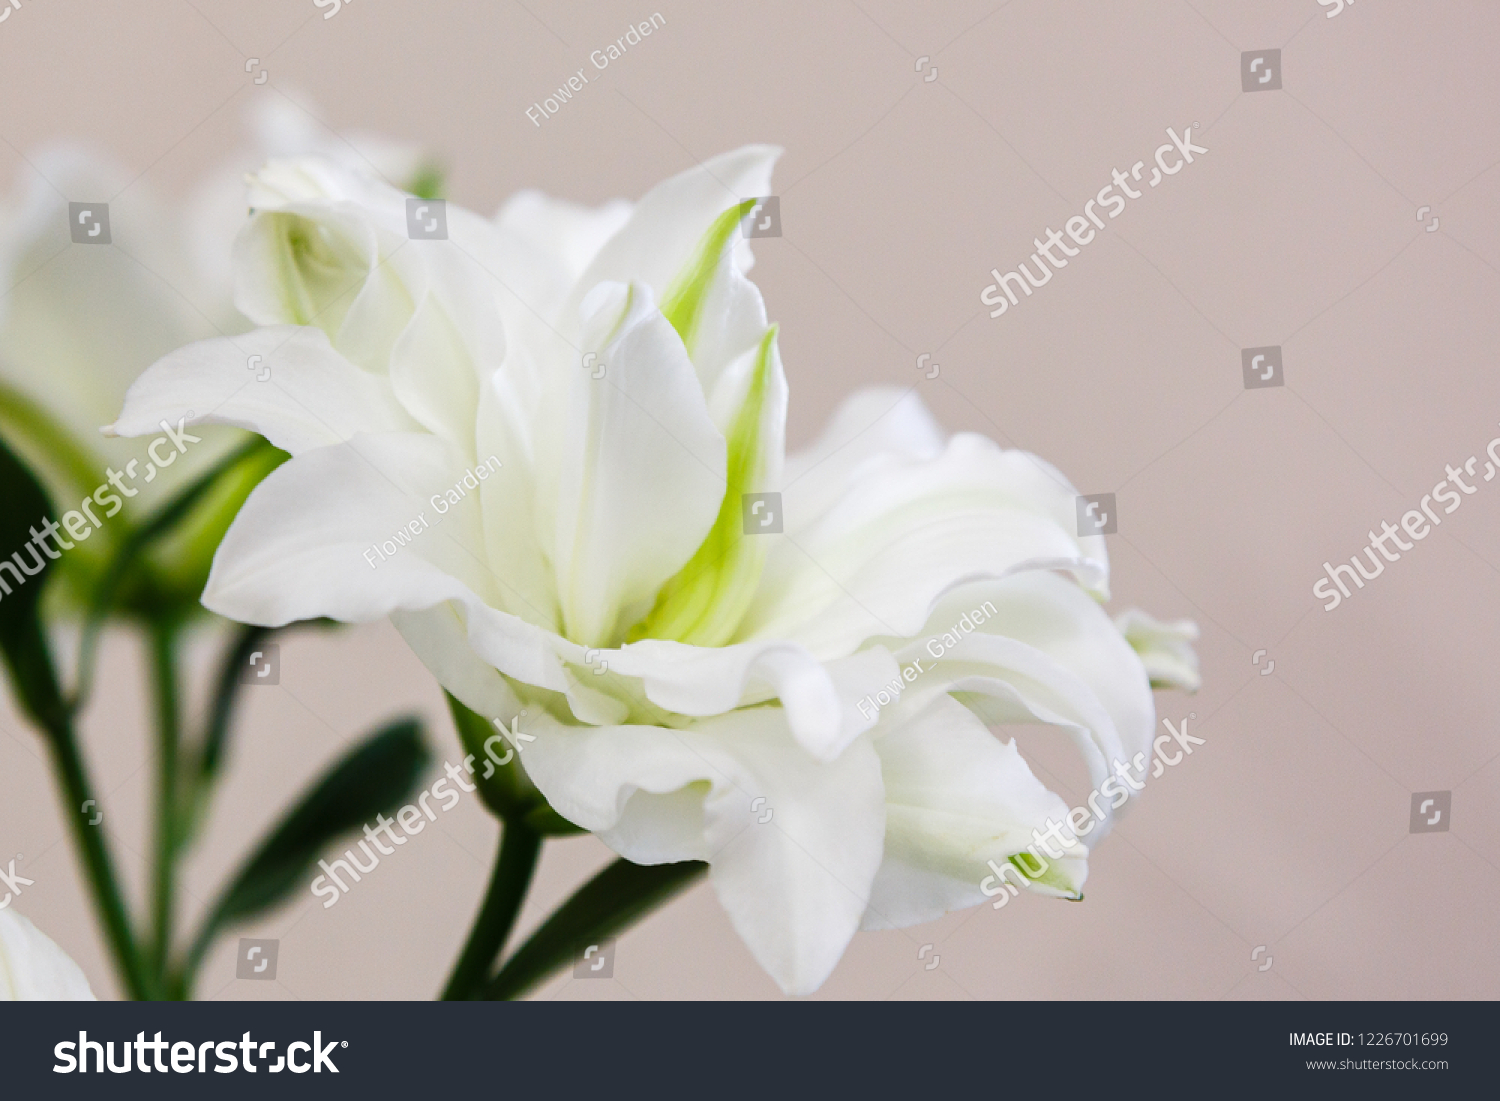 lily flowers lily lat genus plants stock photo (edit now) 1226701699